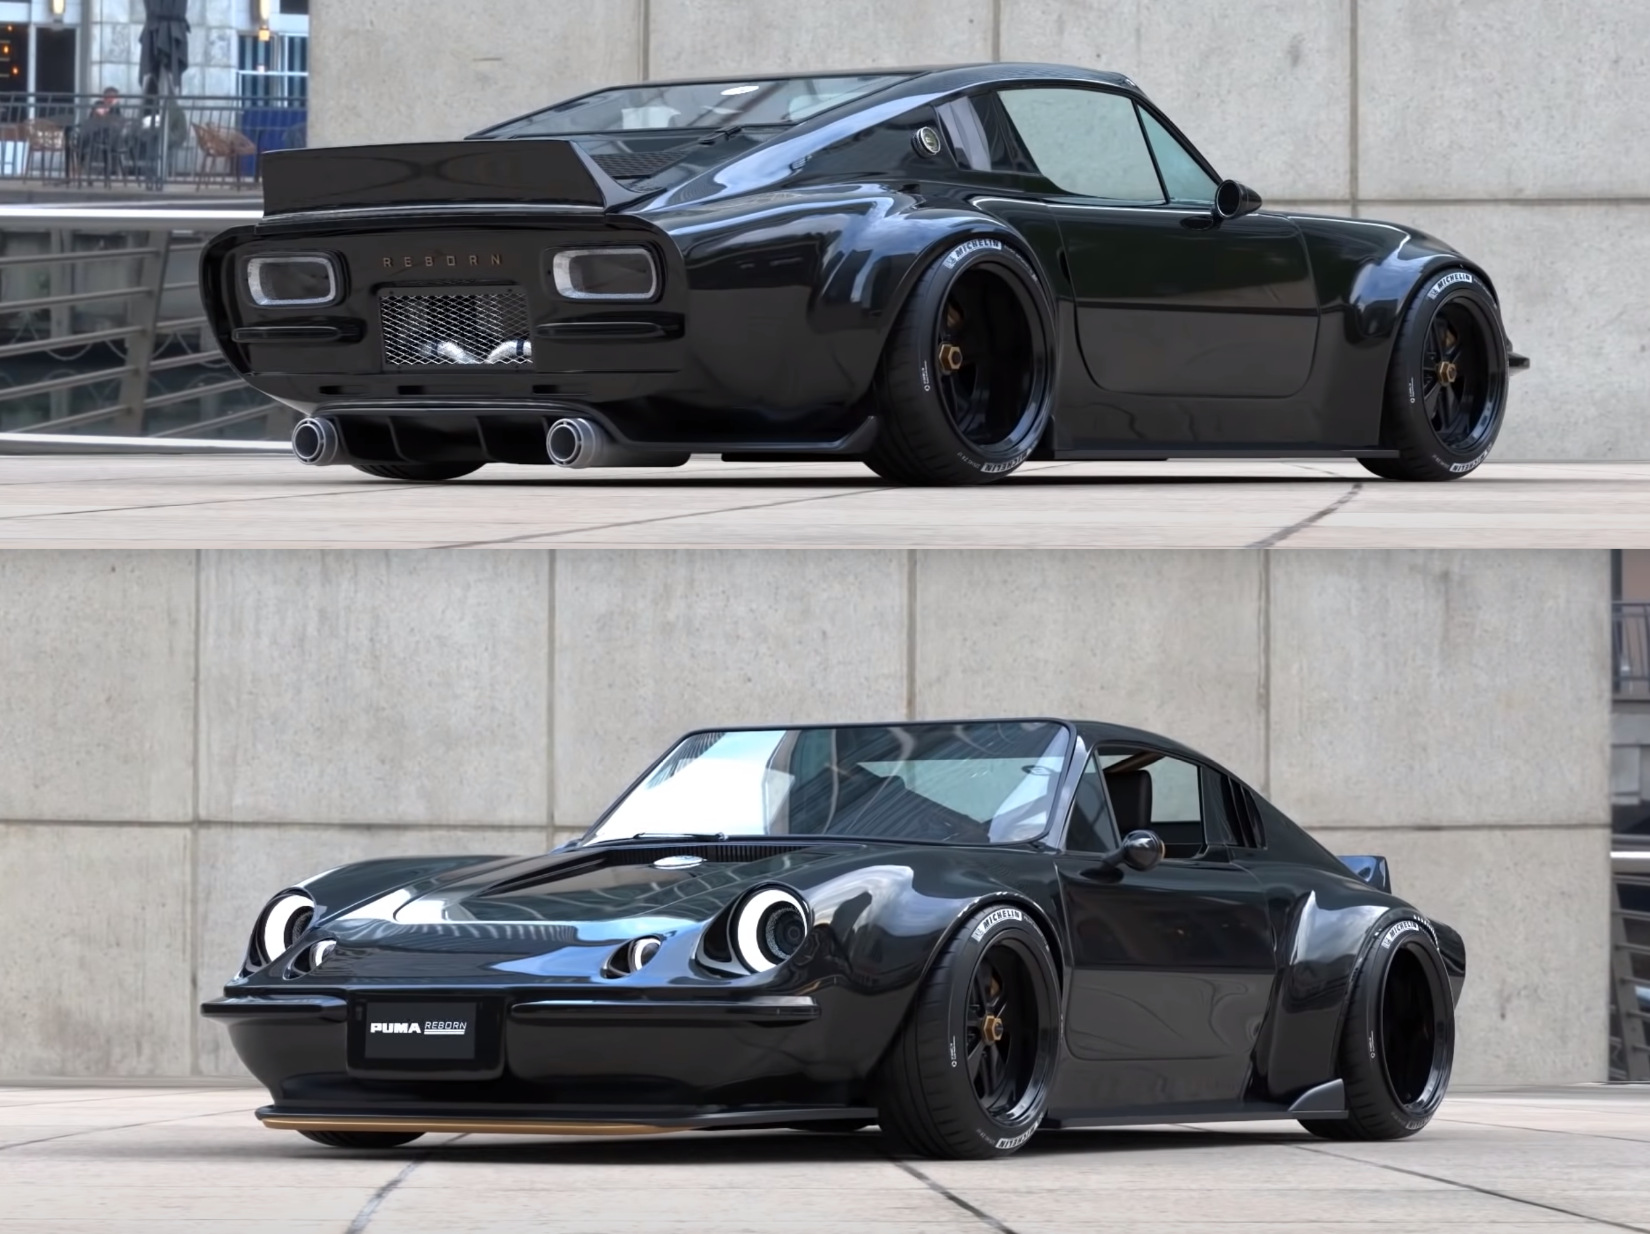 Custom PUMA GTE, a car with a glass fiber body built over a VW BEETLE chassis and engine with a few tweaks. It was sold in Brazil many years ago and it is a Brazilian classic.